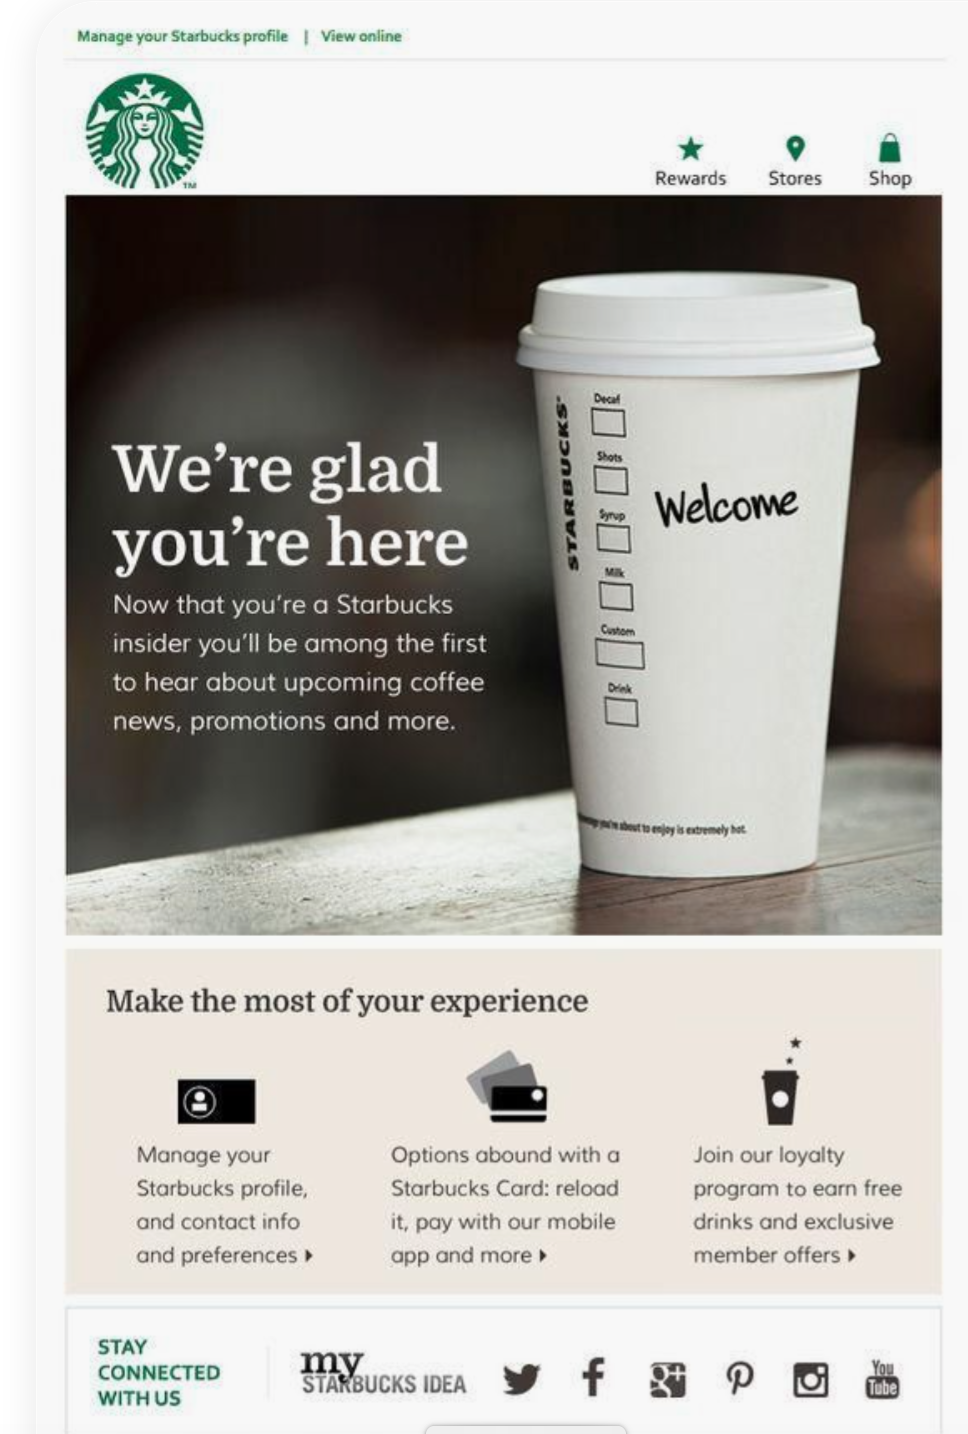 Screenshot from Starbucks' Welcome Email Automation Example